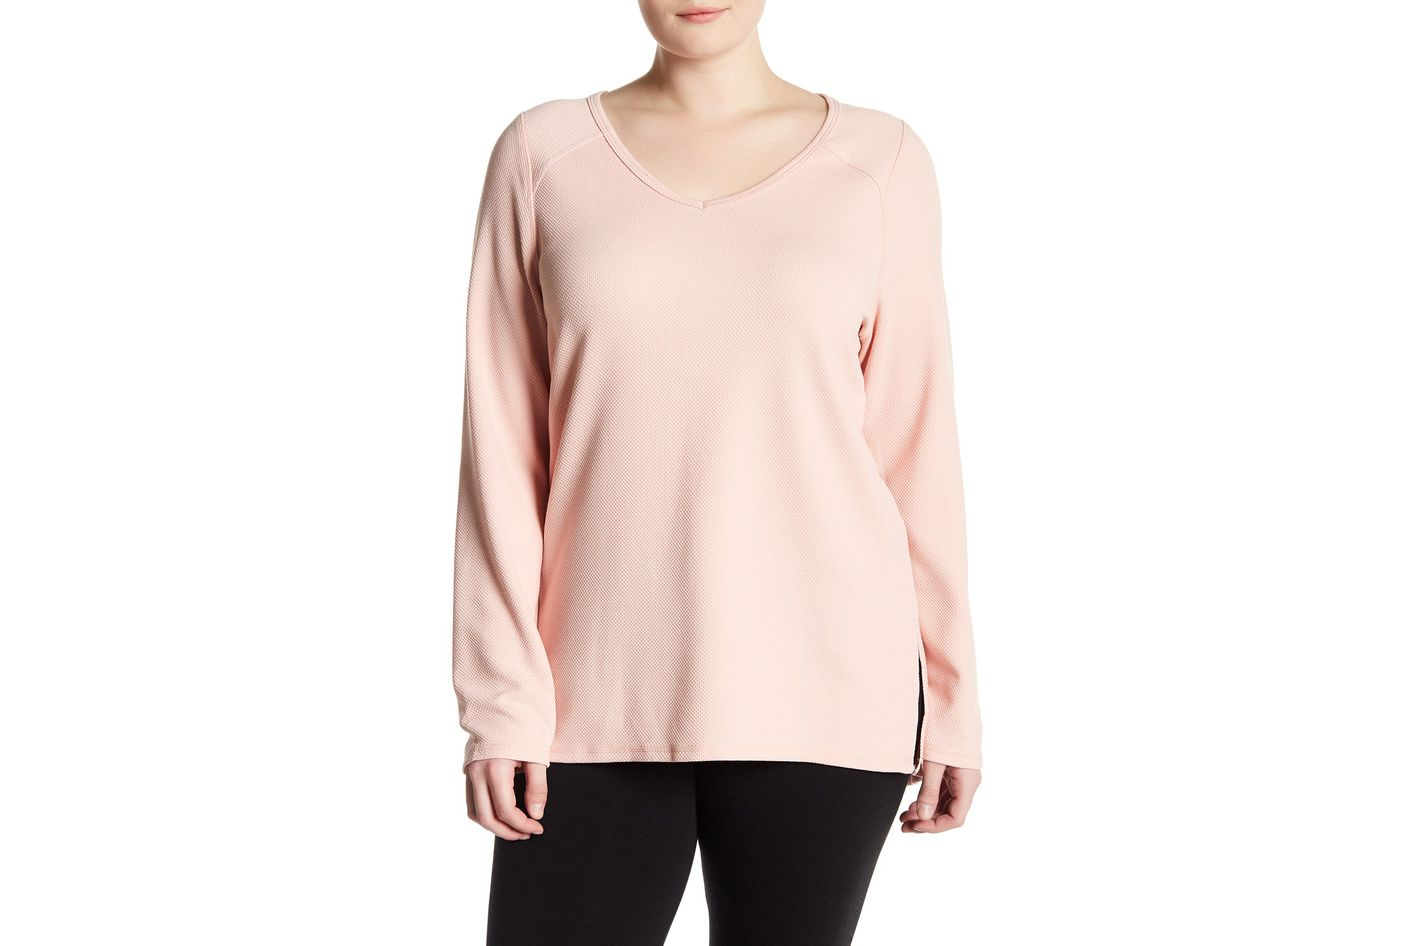 Z by Zella Third Eye Pullover